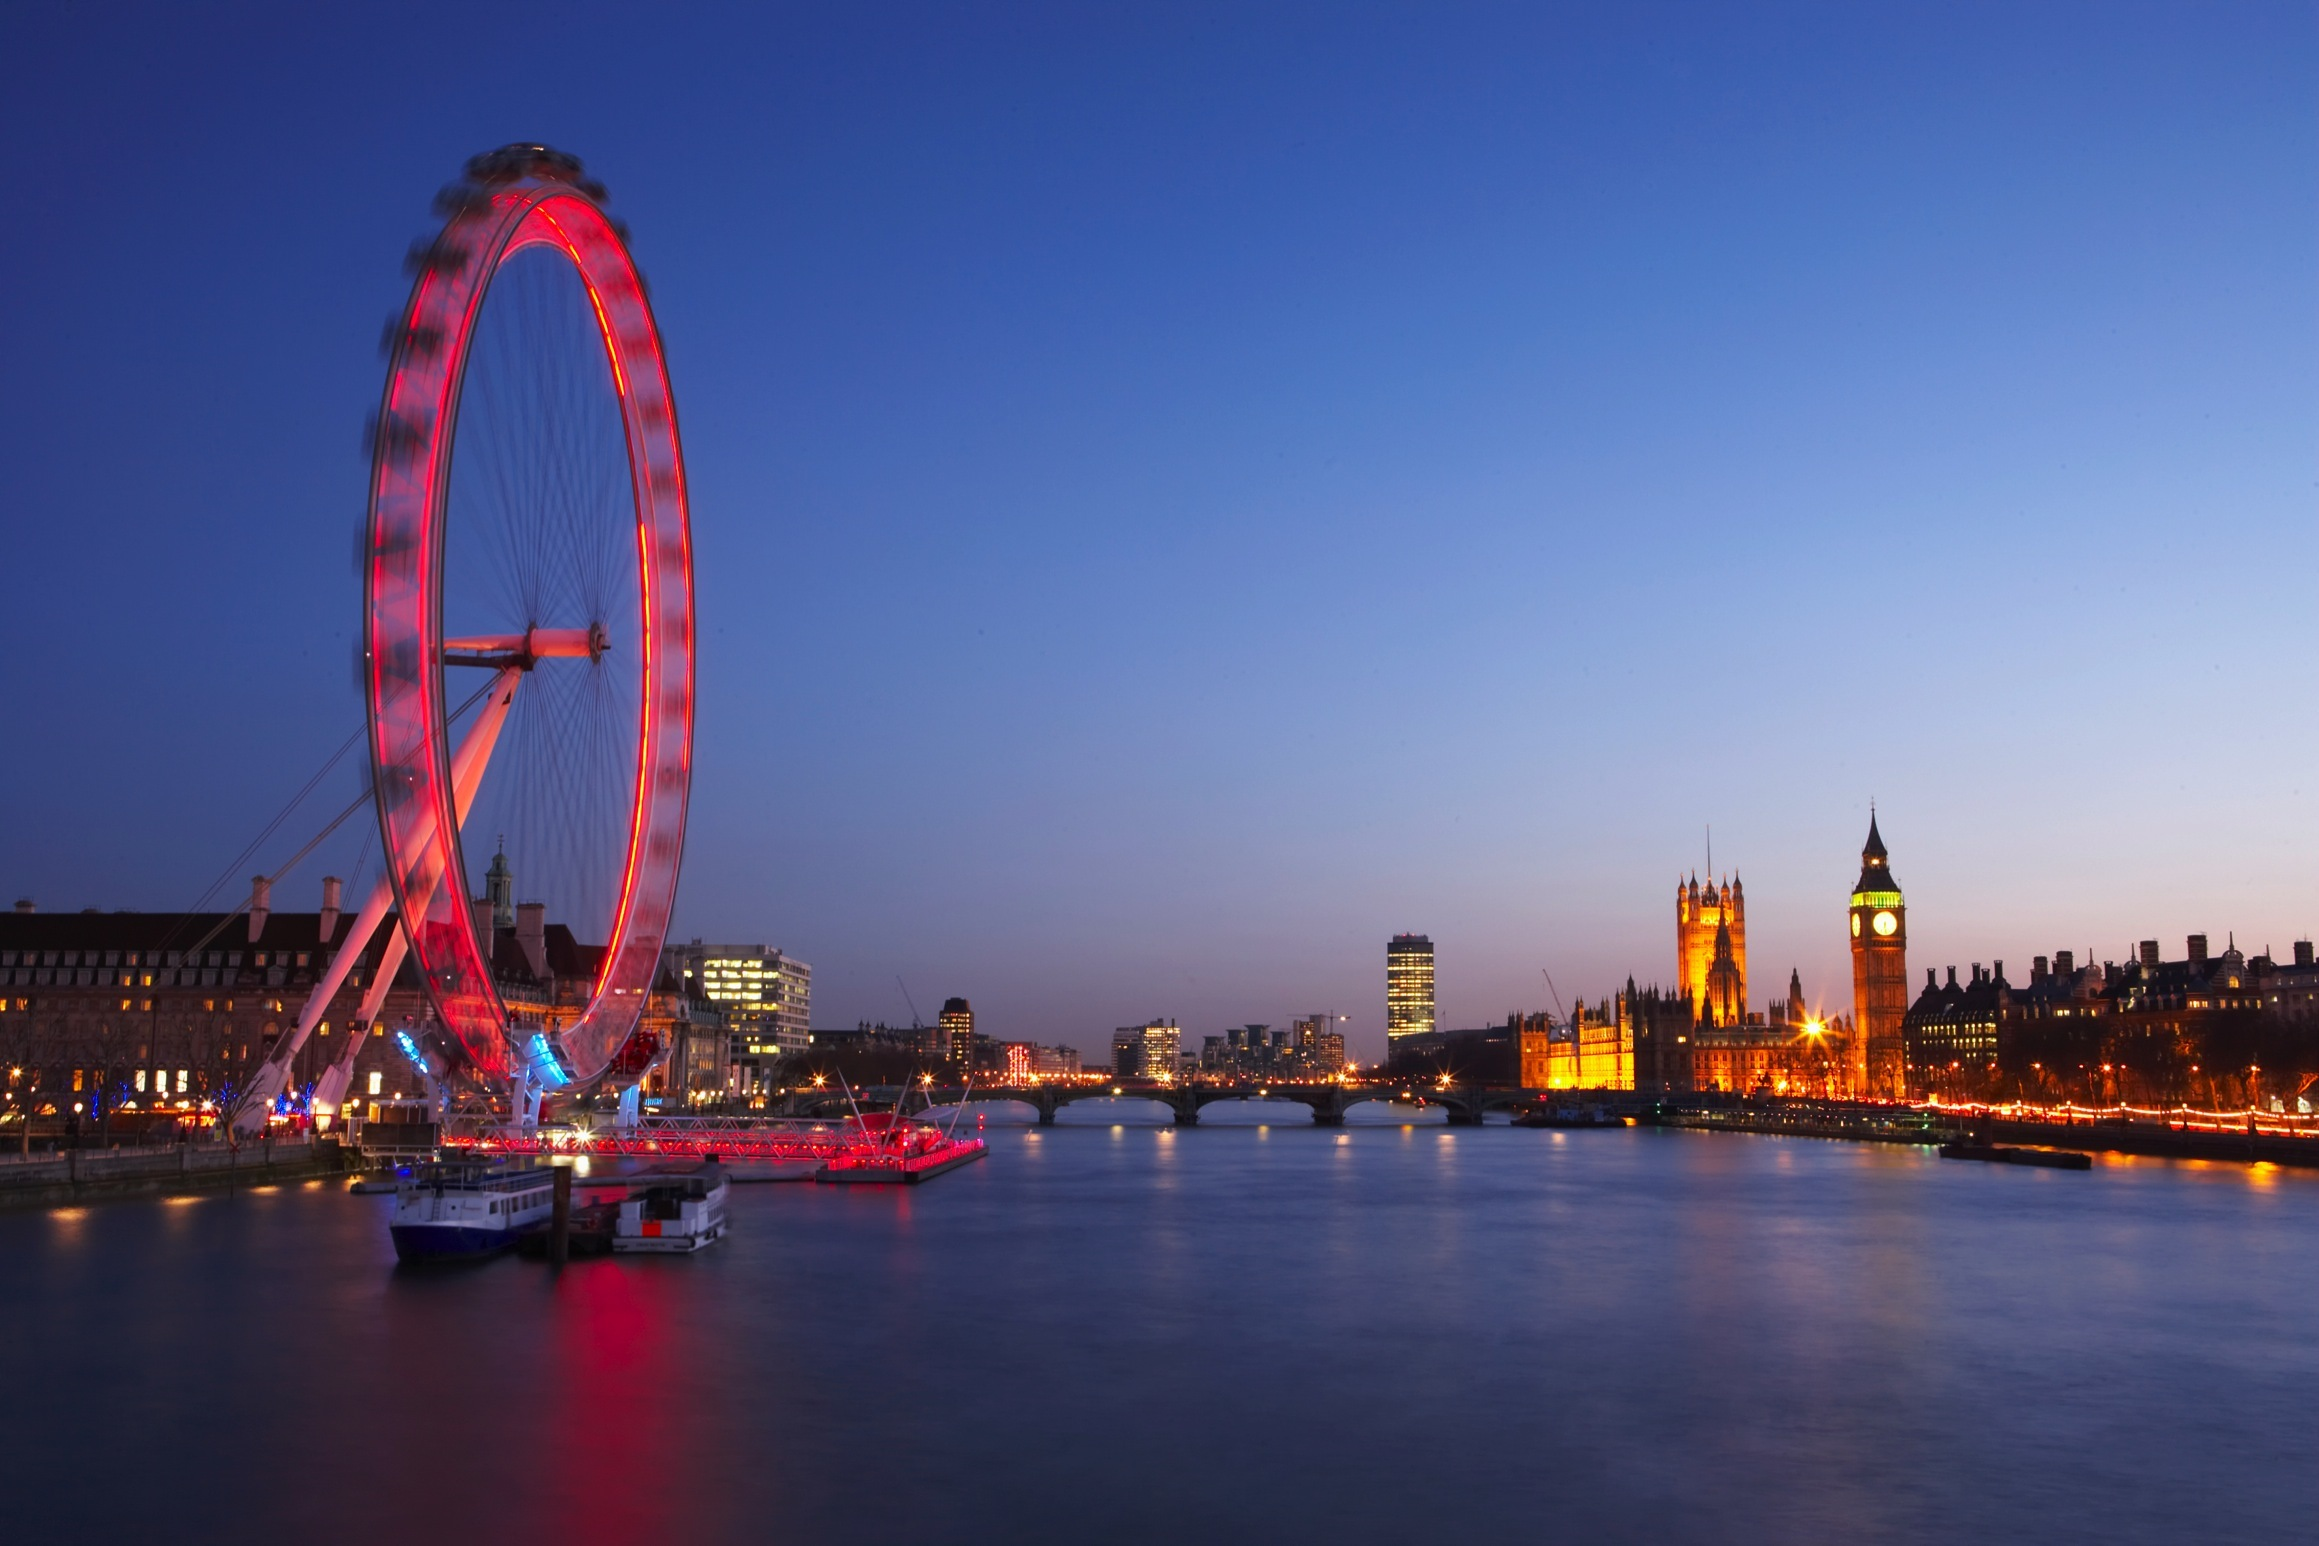 Valentine's Day at the London Eye | Things to do in London